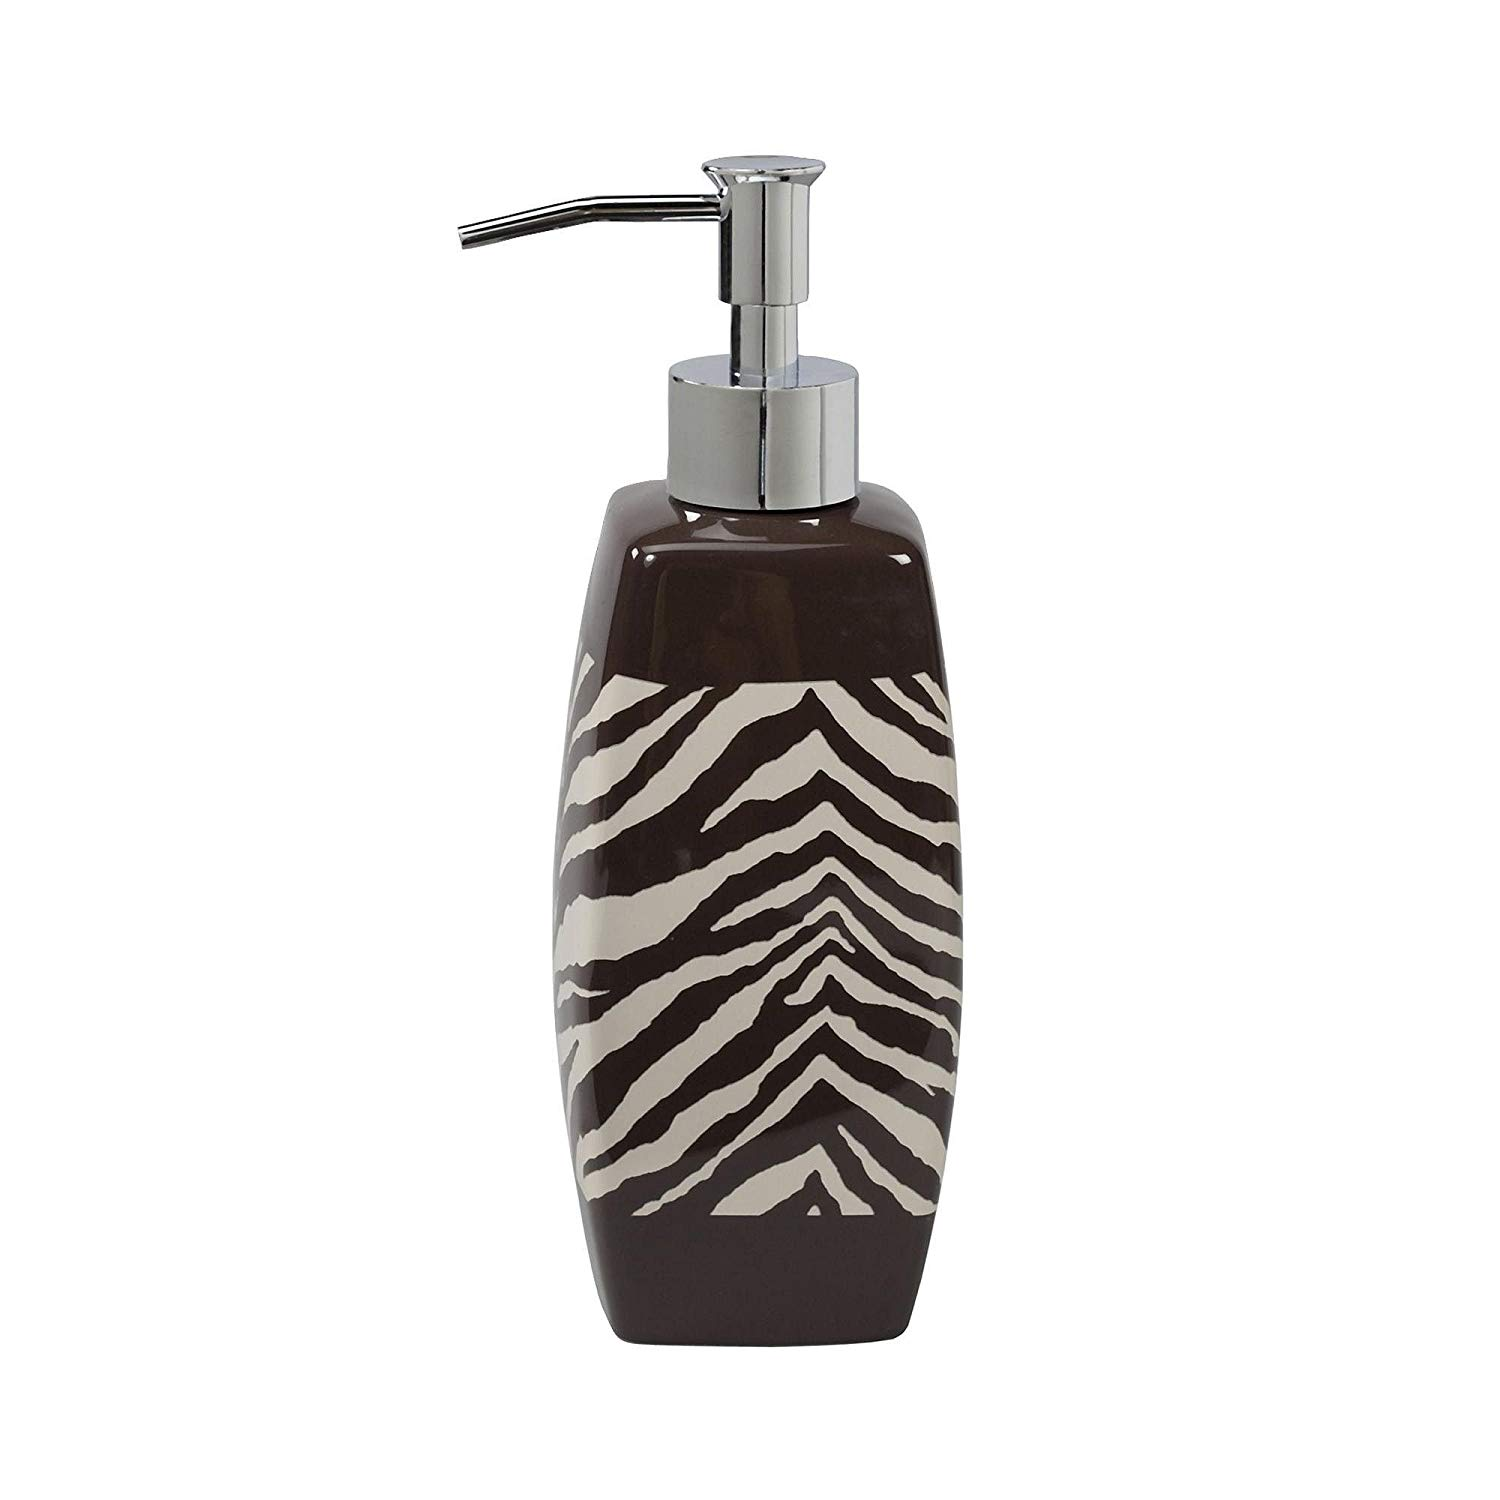 Creative Bath Product Zebra Ceramic Lotion Dispenser - Brown/Tan